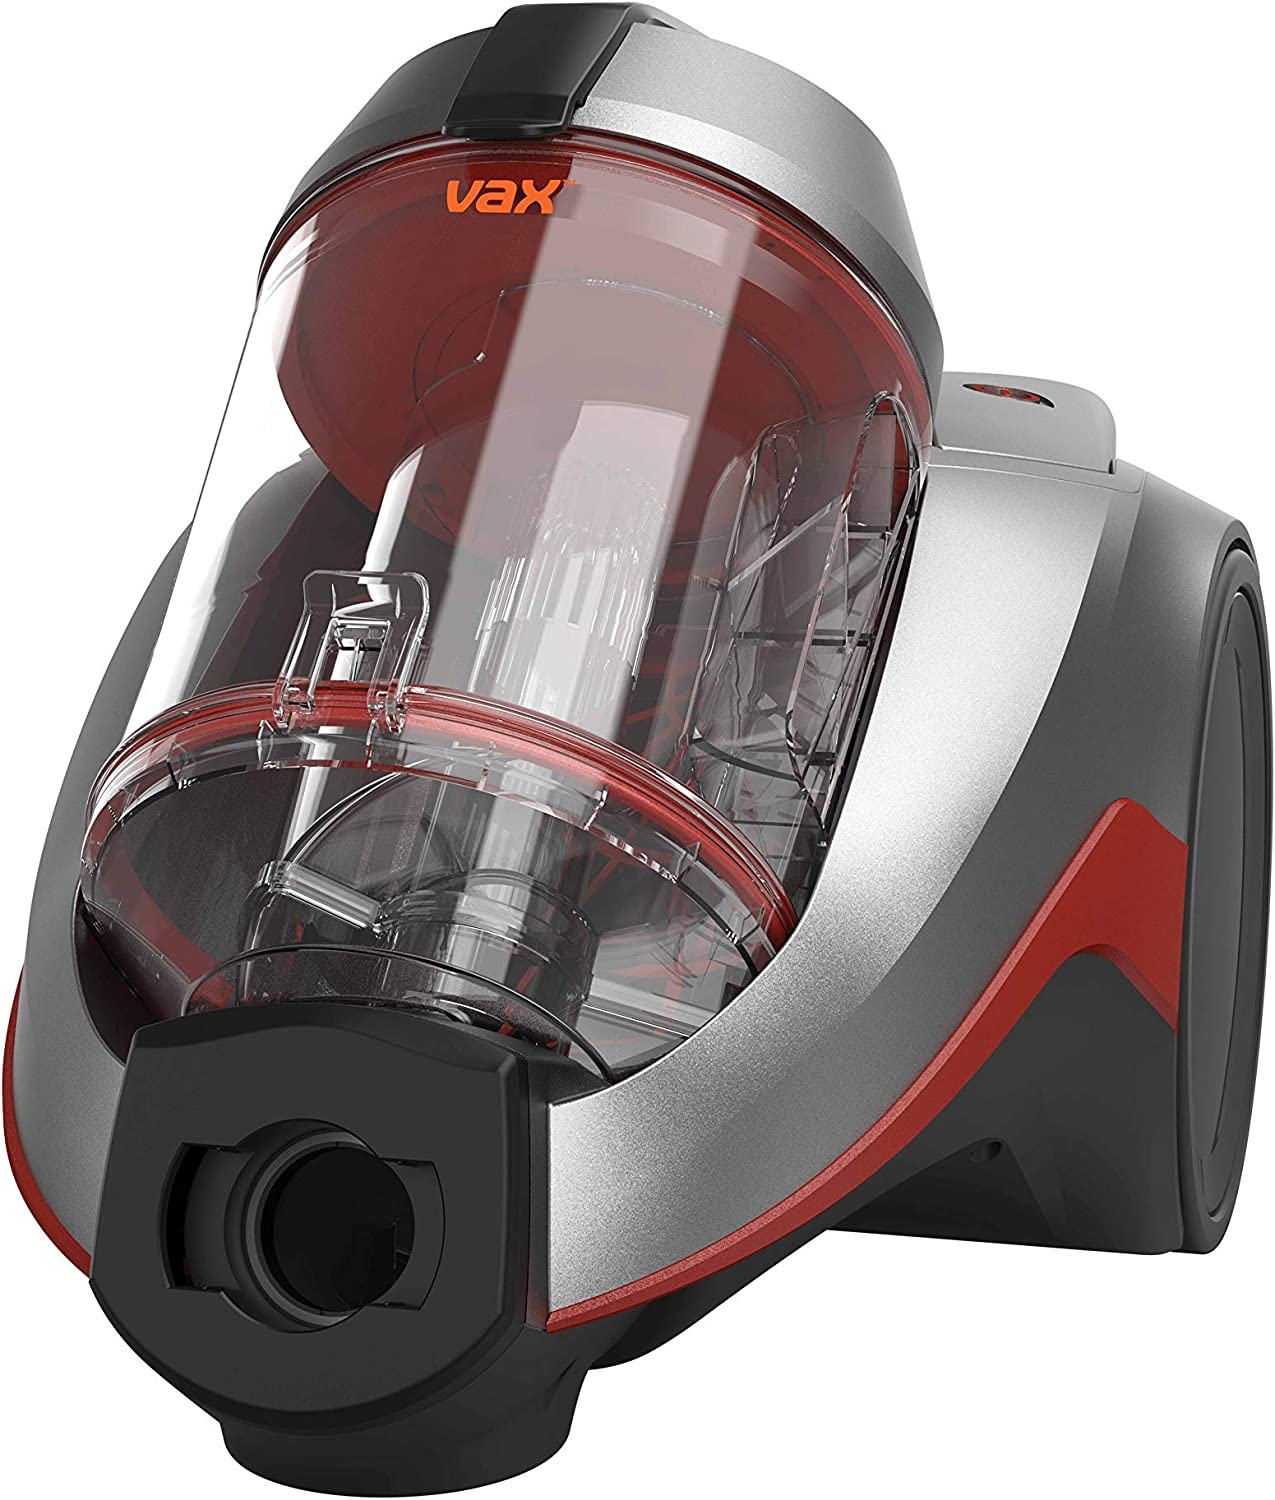 Vax Air Max Pet Cylinder Vacuum Cleaner | VAX Official Website